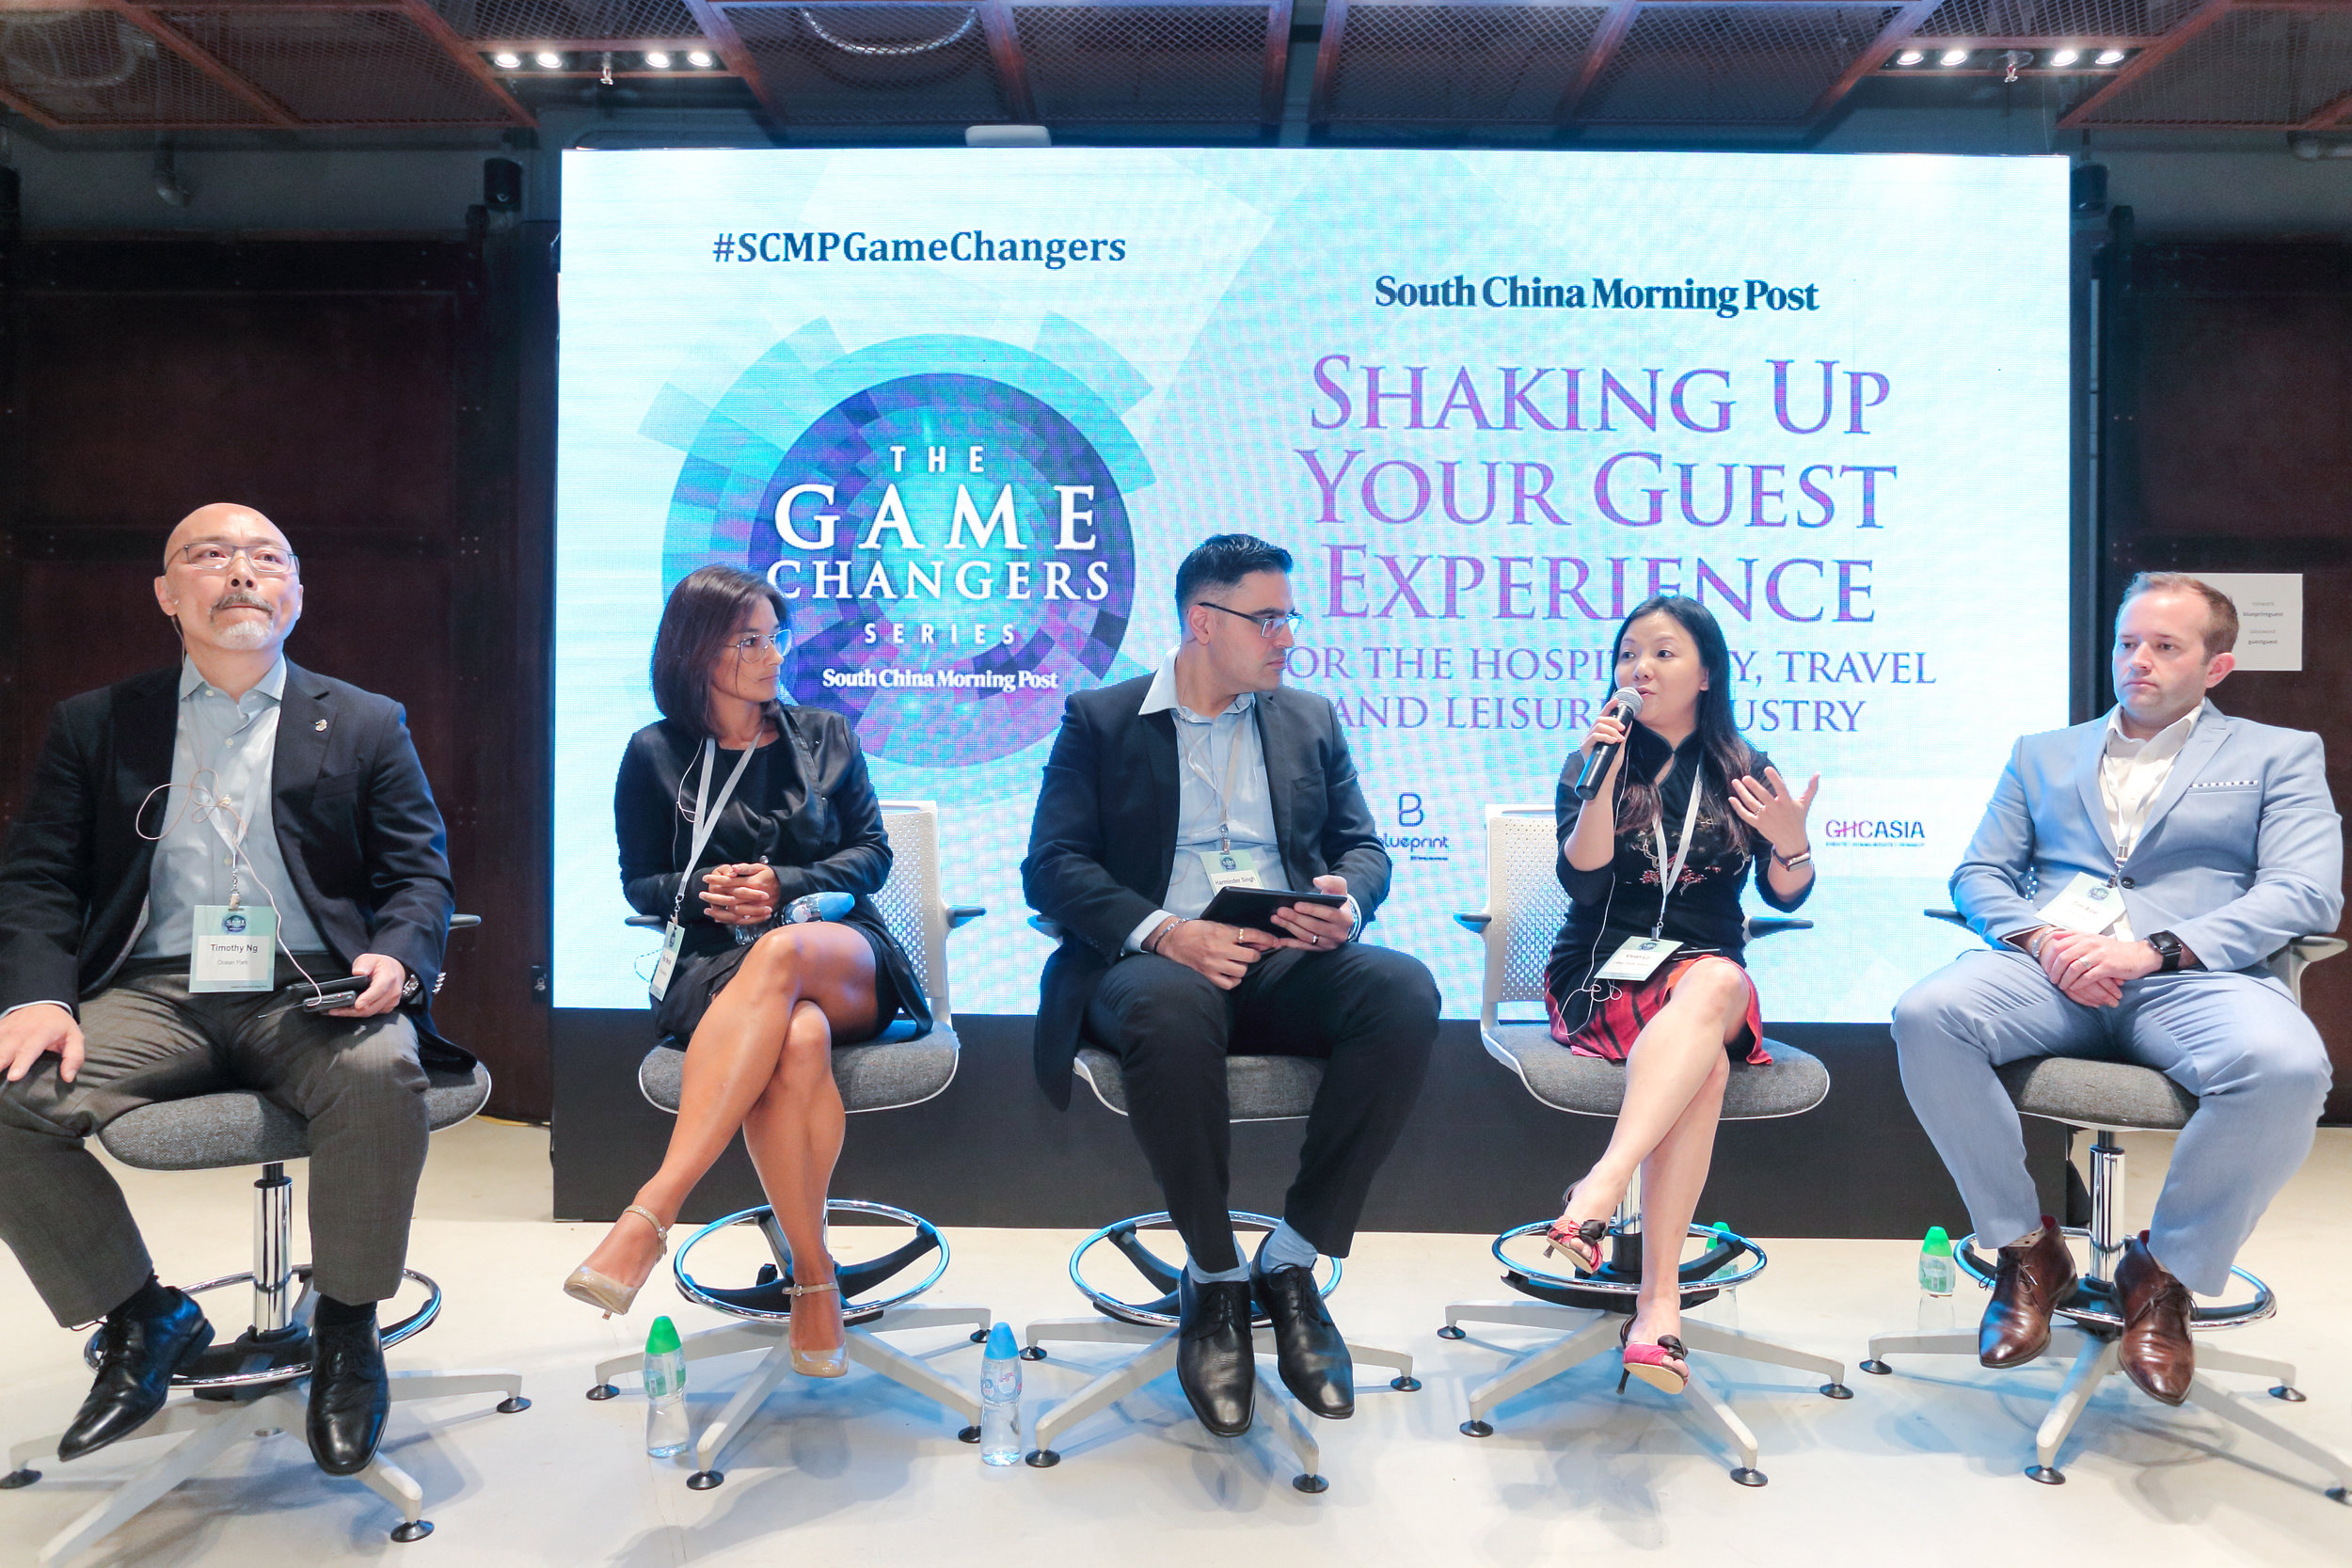 """(From left) Timothy Ng, Executive Director, Operations and Entertainment, Ocean Park Corporation; Pilar Morais, CEO, CHI Residences; Harminder Singh, Journalist, SCMP; Vivian Lo, General Manager, Customer Experience and Design, Cathay Pacific Airways; Tim Alpe, COO, Ovolo Hotels sharing insights on """"Millennials want more, can you deliver?"""""""